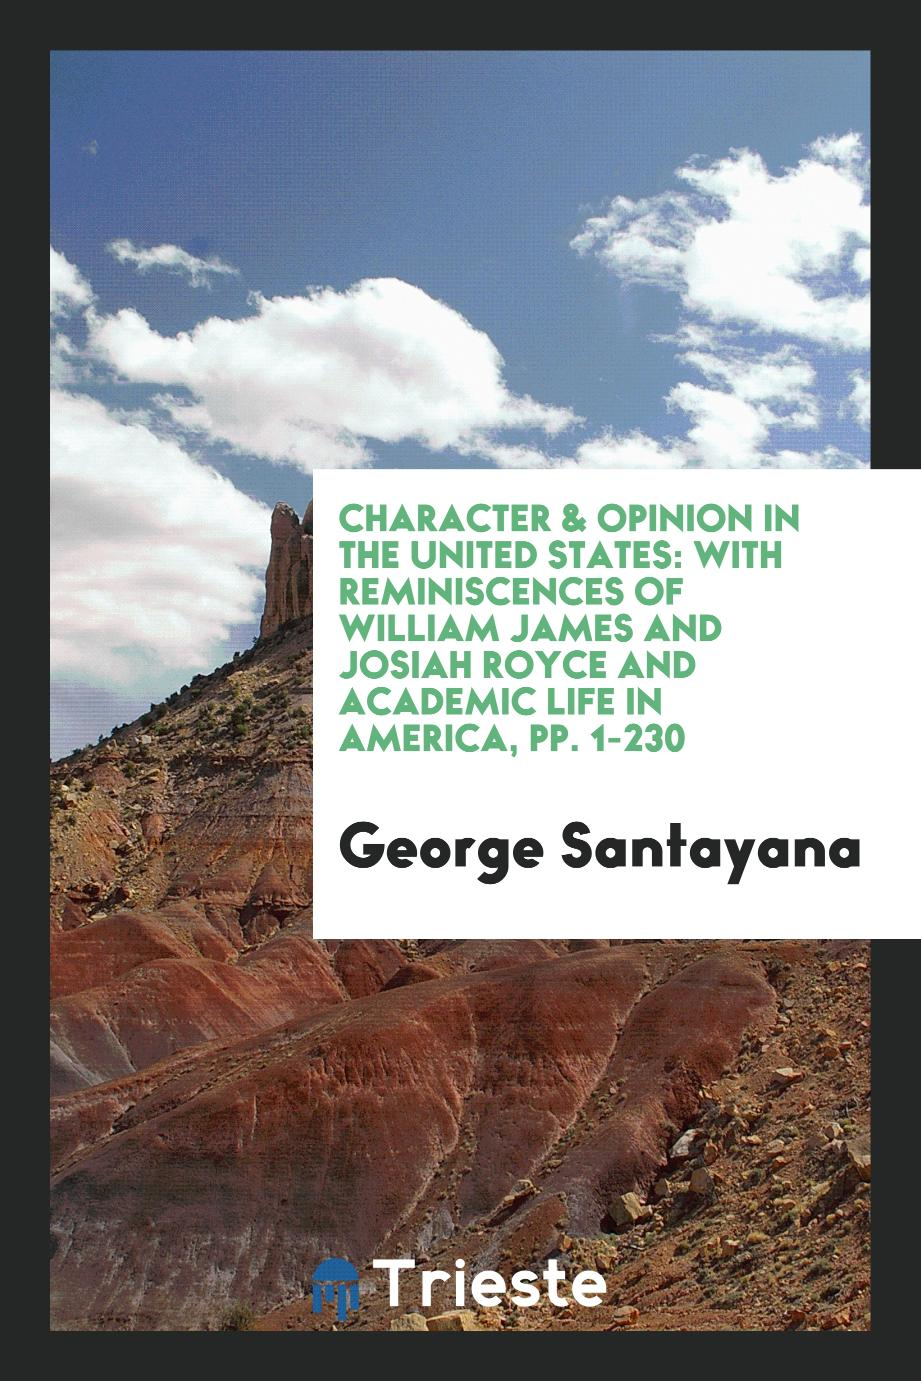 Character & Opinion in the United States: With Reminiscences of William James and Josiah Royce and Academic Life in America, pp. 1-230